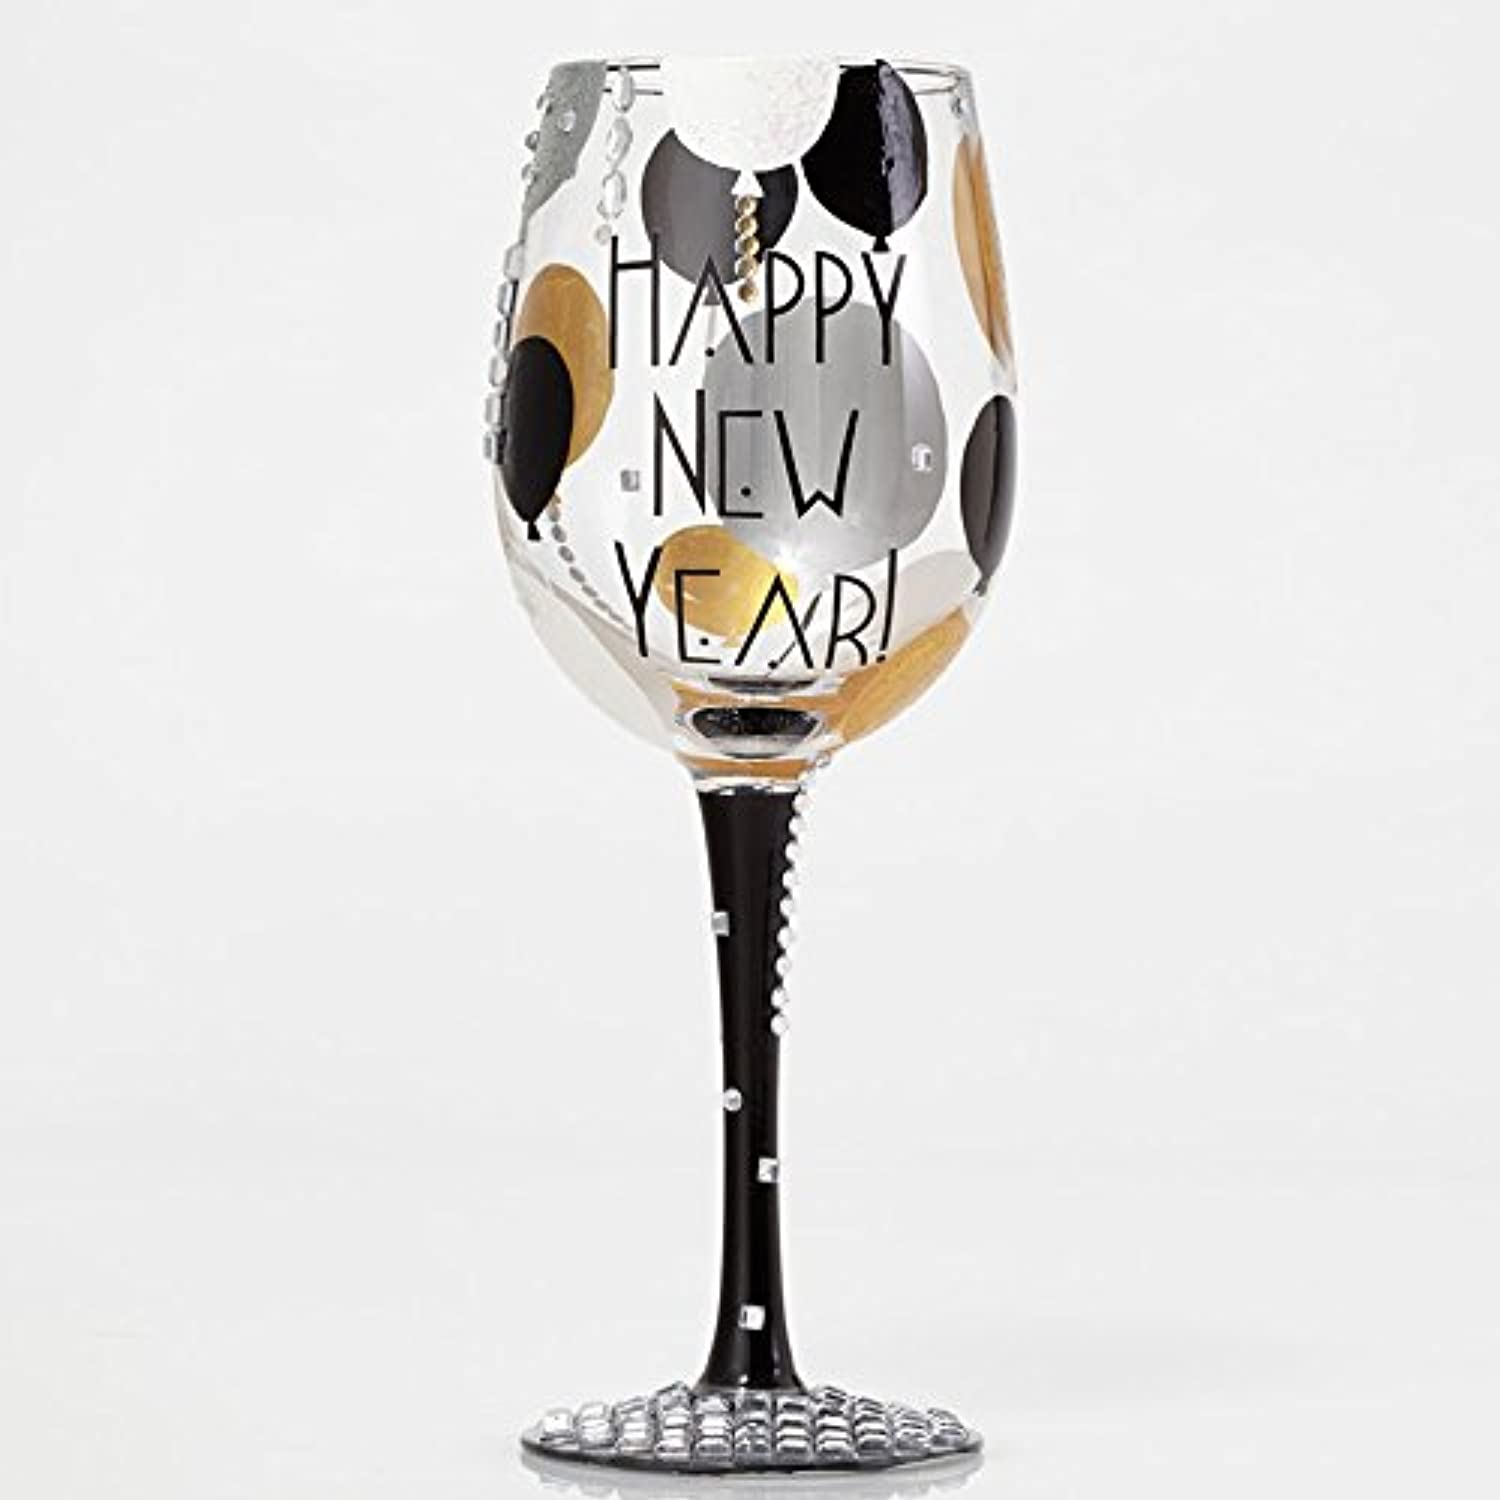 Enesco Blinging New Year Wine Glass by Lolita, 10.5